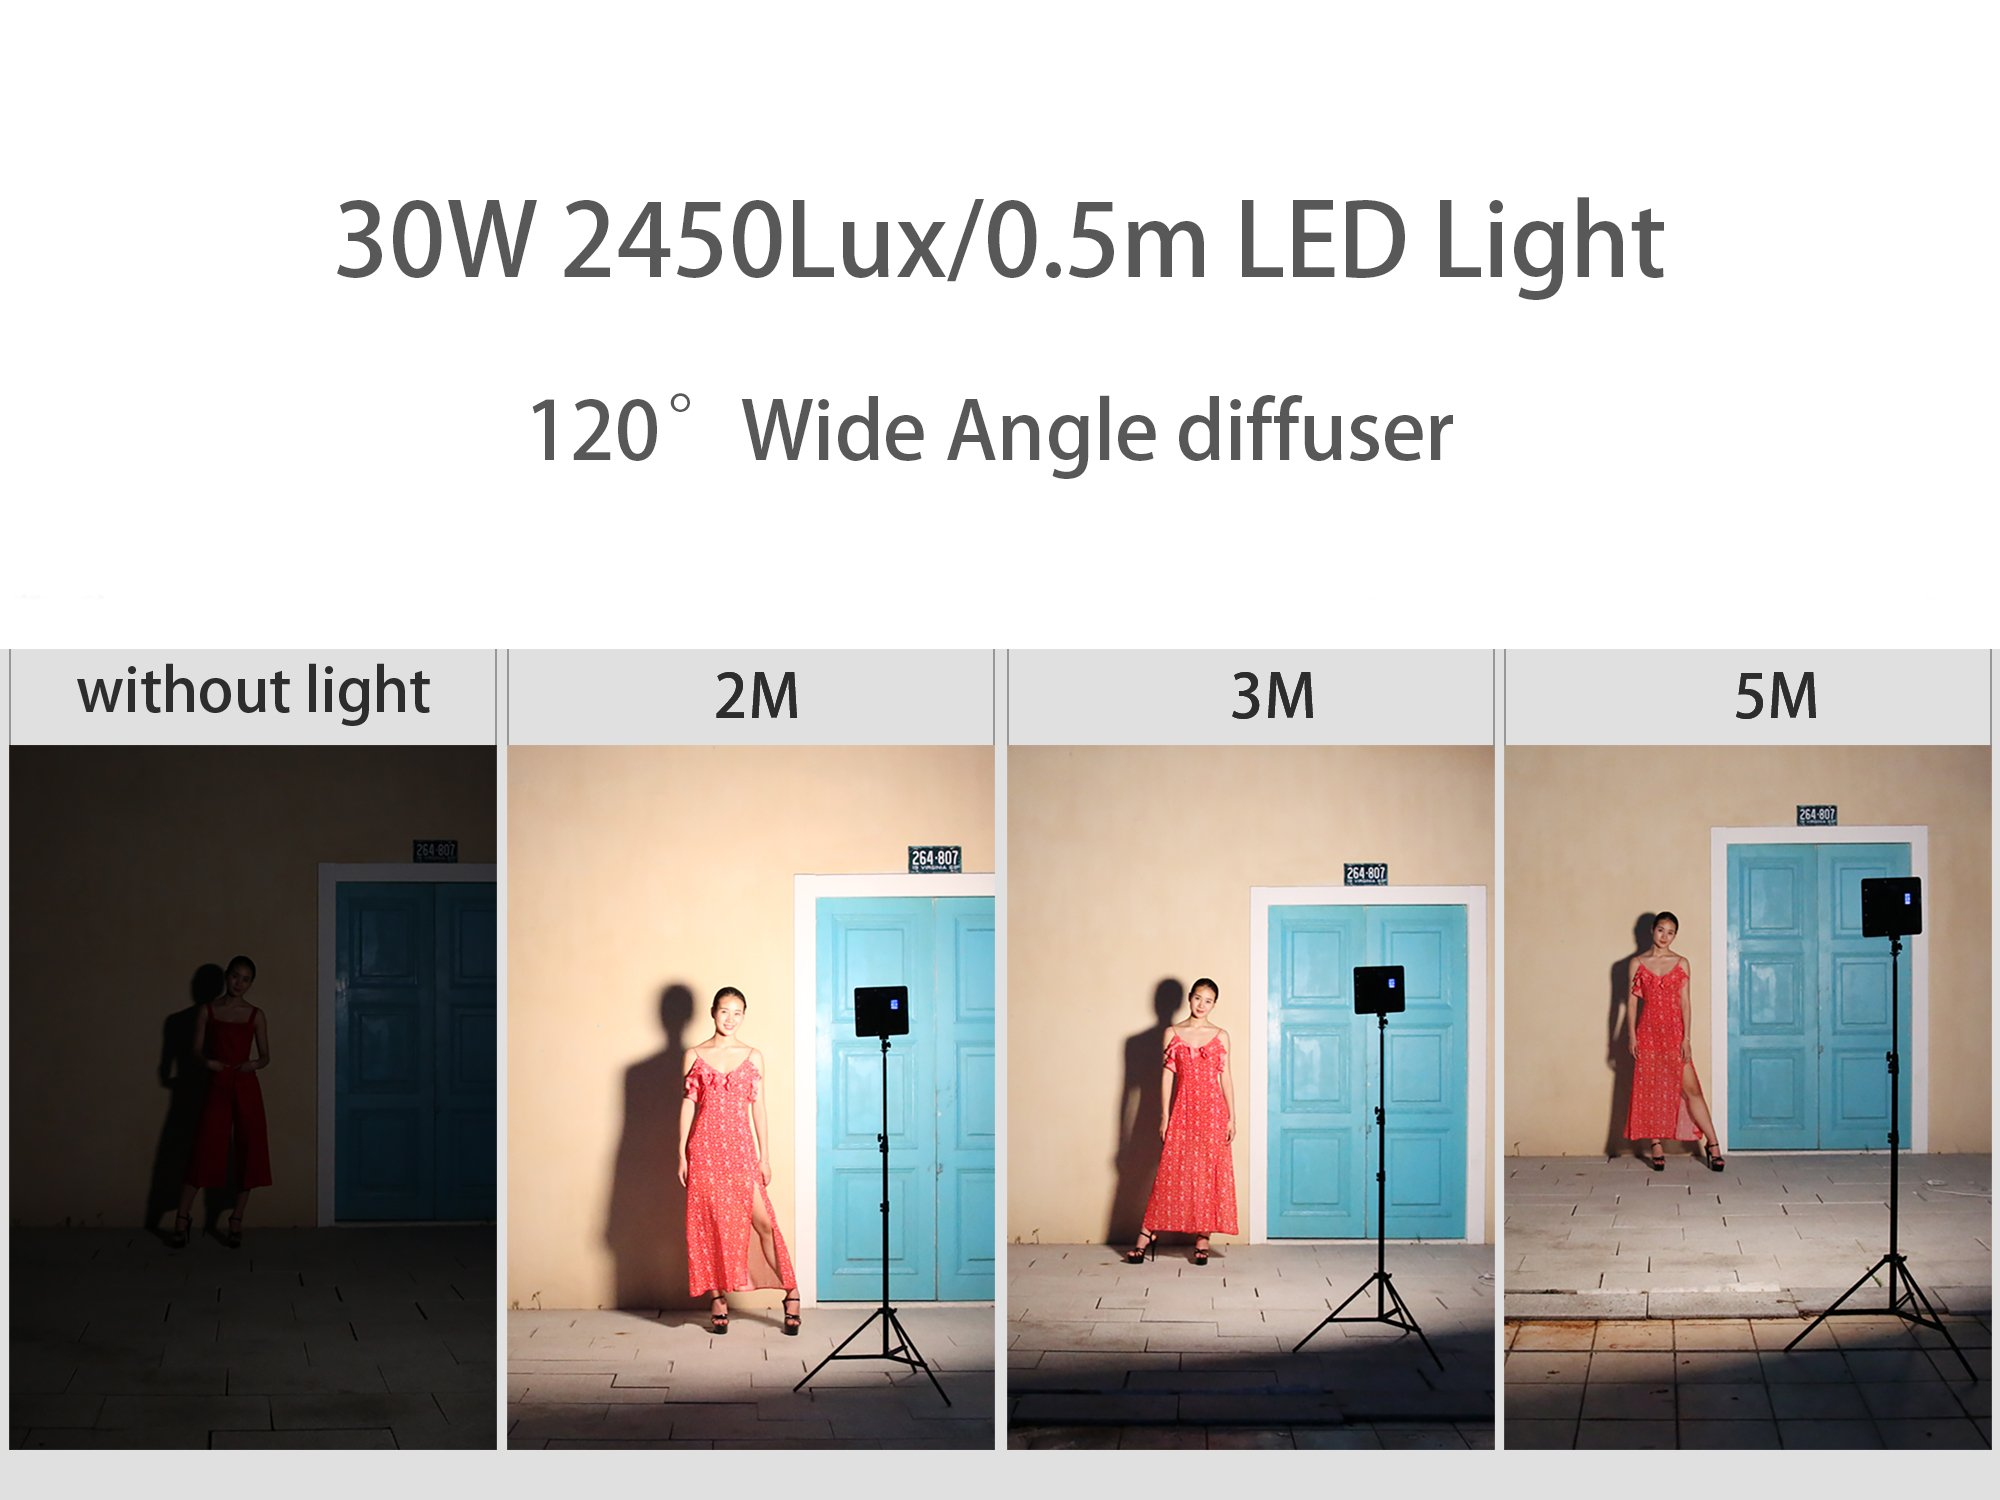 2 Packs VILTROX LED Panel Light with Stand Kit, (30W/2450Lux) Bi-Color Dimmable Studio Photography Video Lighting kit CRI95+ for Wedding News Interview YouTube Live Video by VILTROX (Image #6)